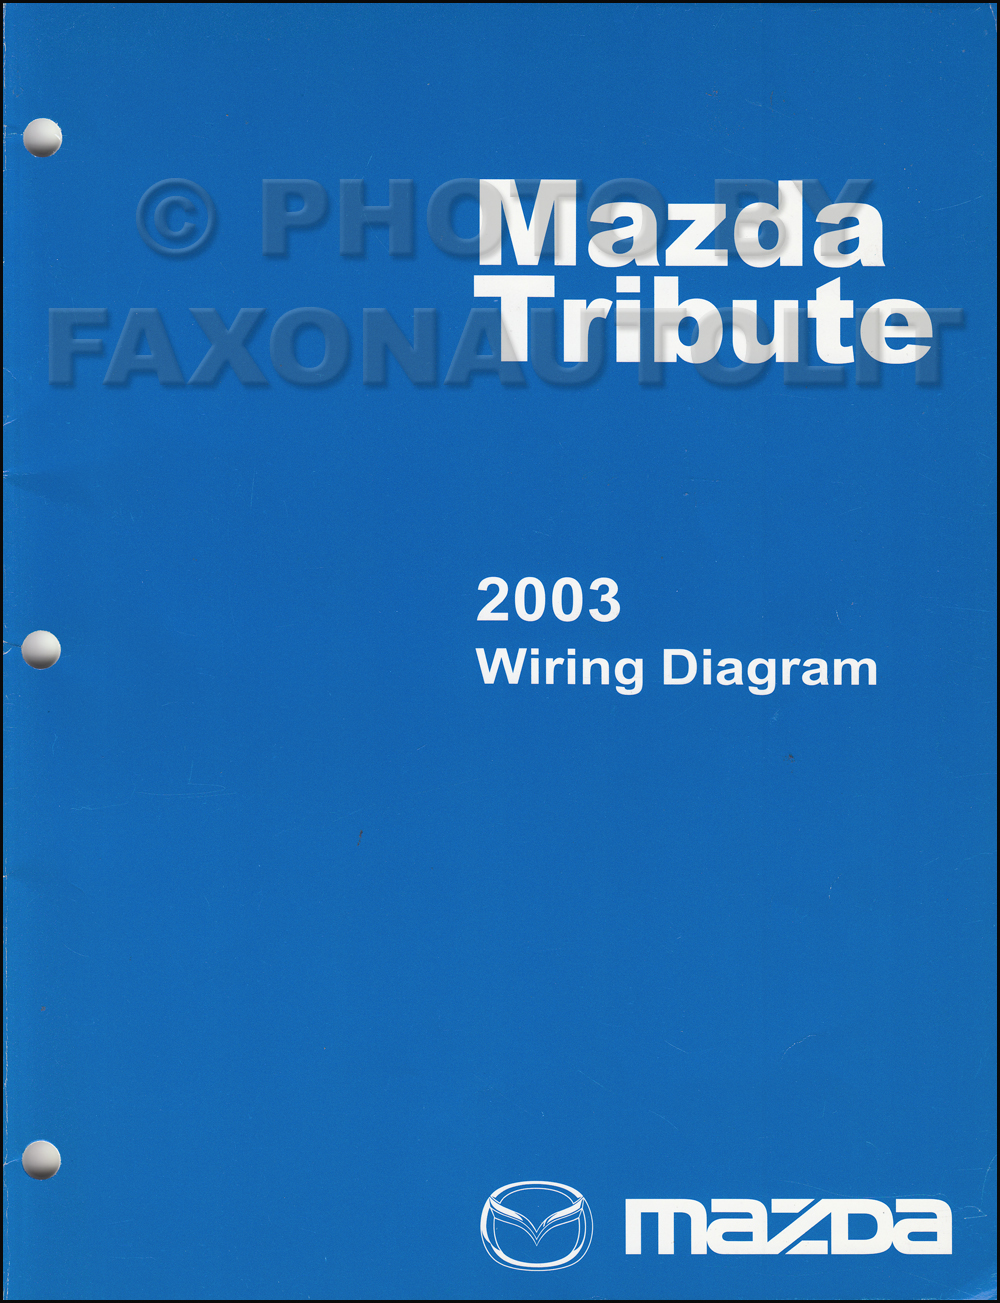 2003 mazda tribute wiring diagram manual original Mazda Tribute Radiator Diagram